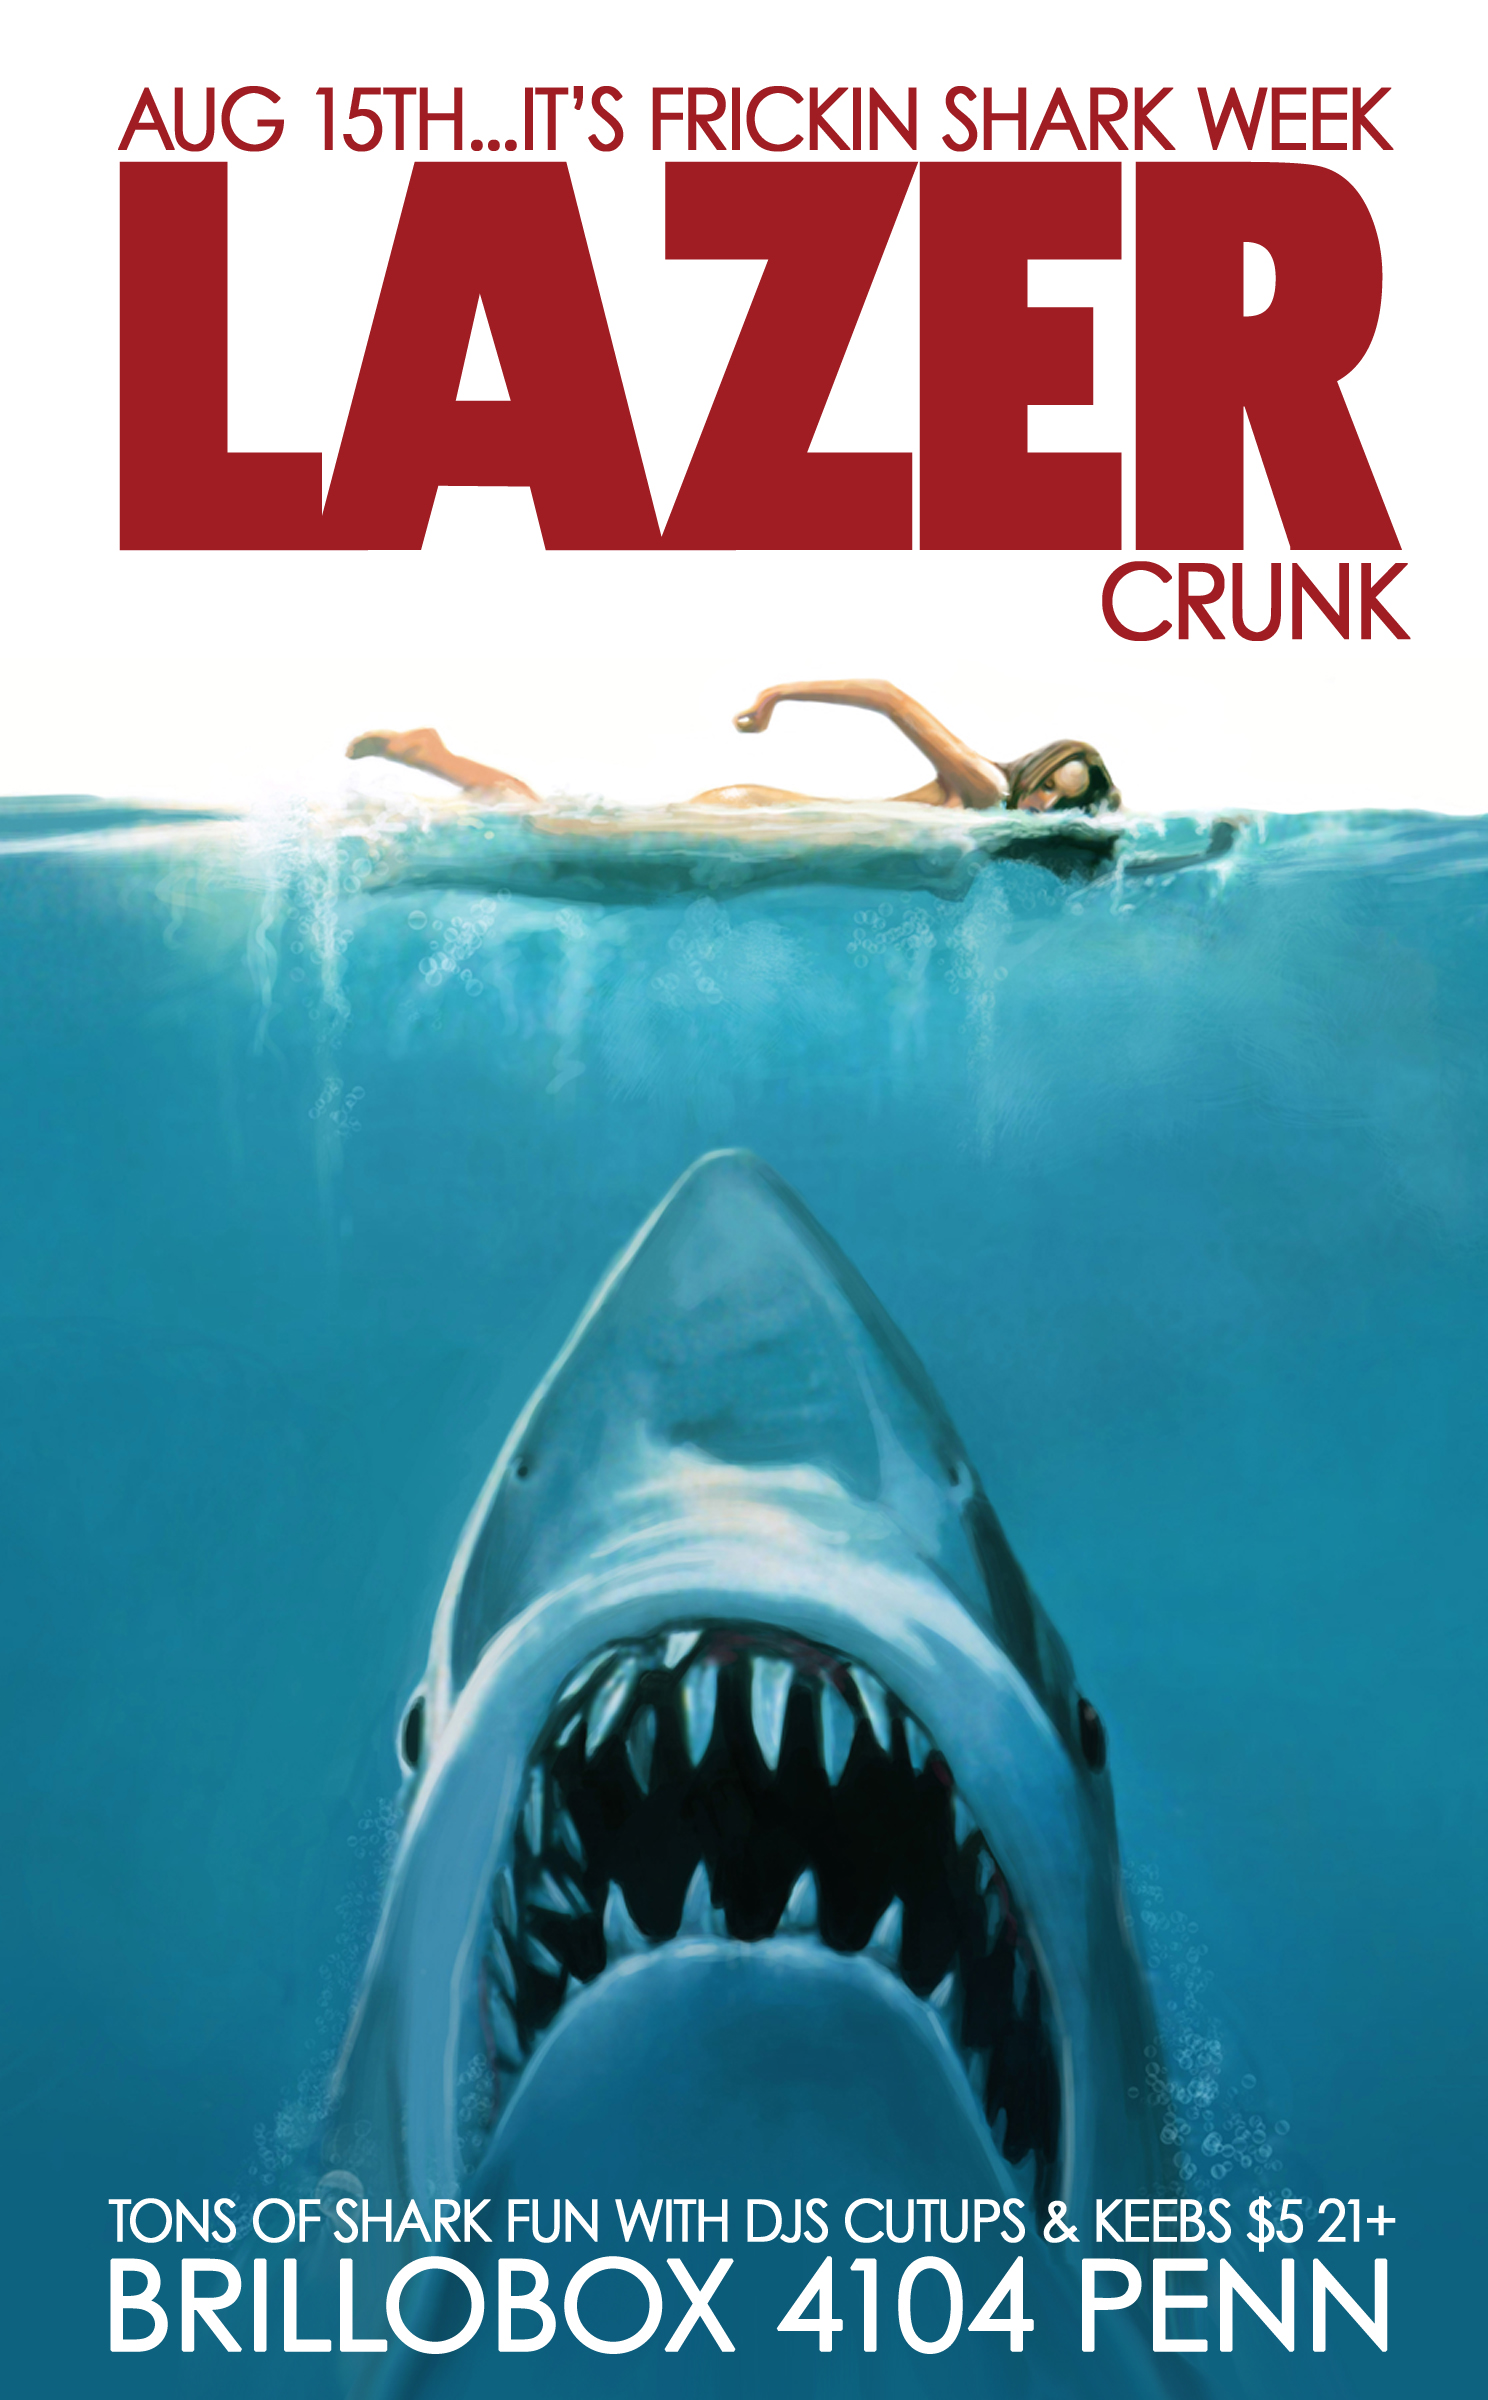 Fri Aug 15th LAZERCRUNK *SHARK WEEK* w/ Cutups & Keebs